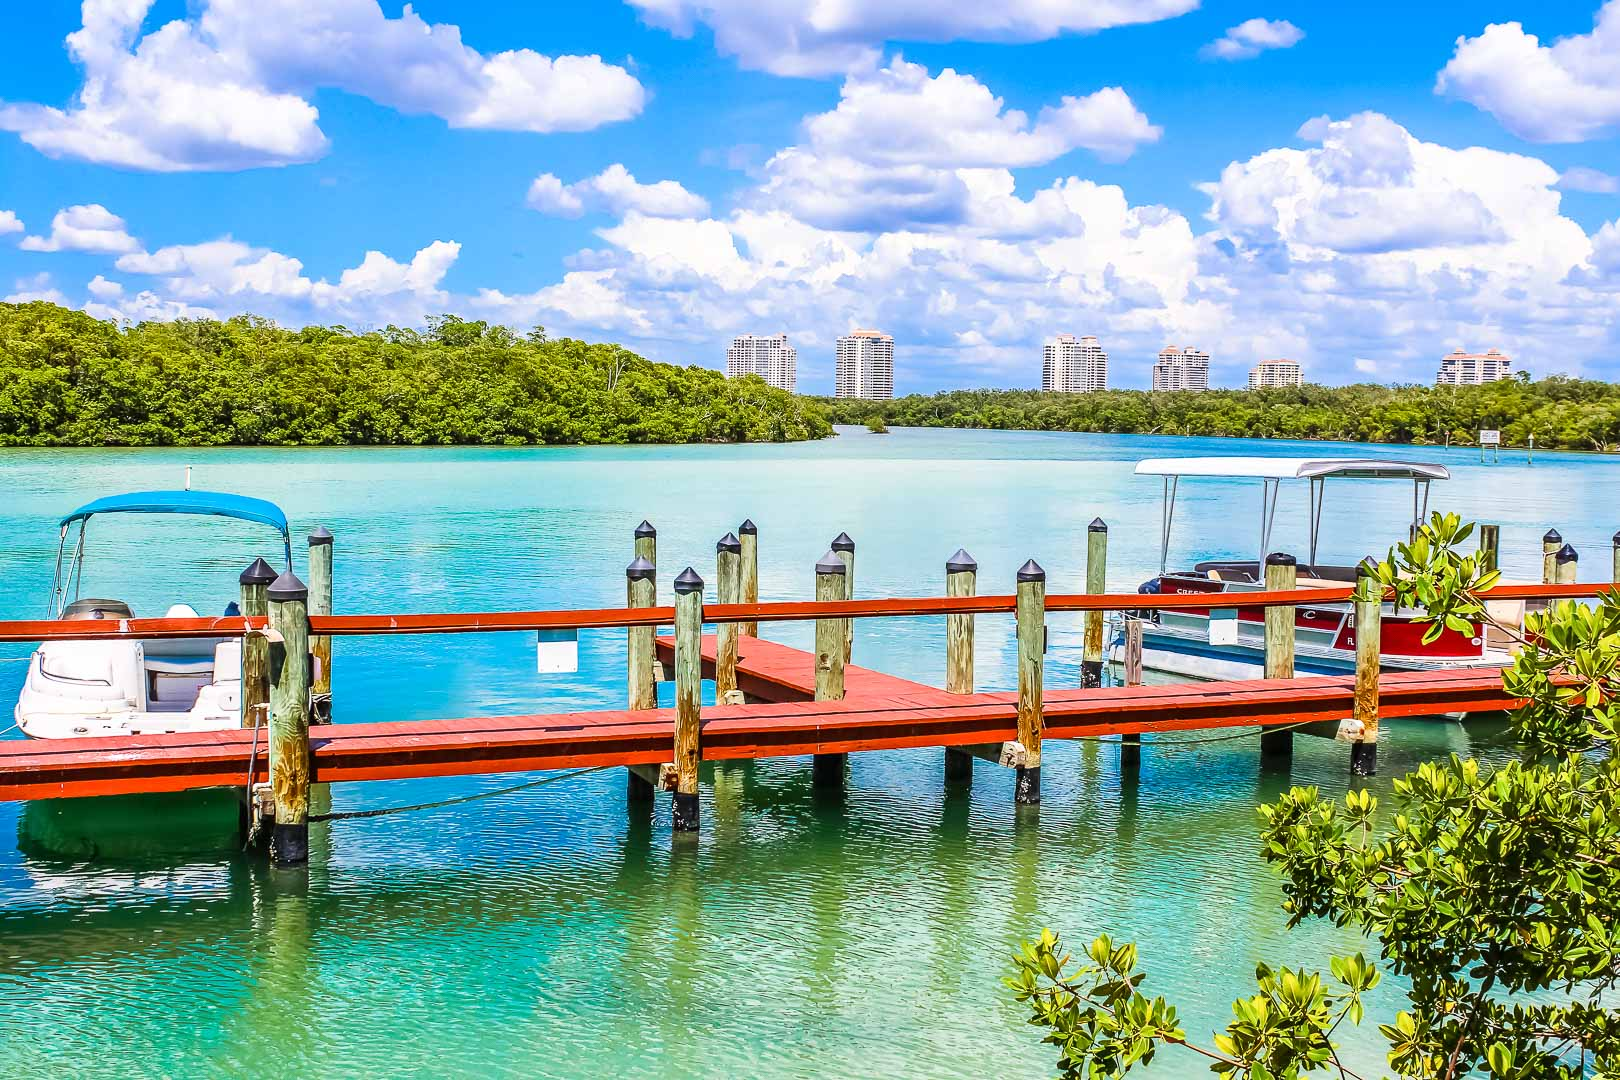 A Boat Dock from VRI's Bonita Resort and Club in Florida.